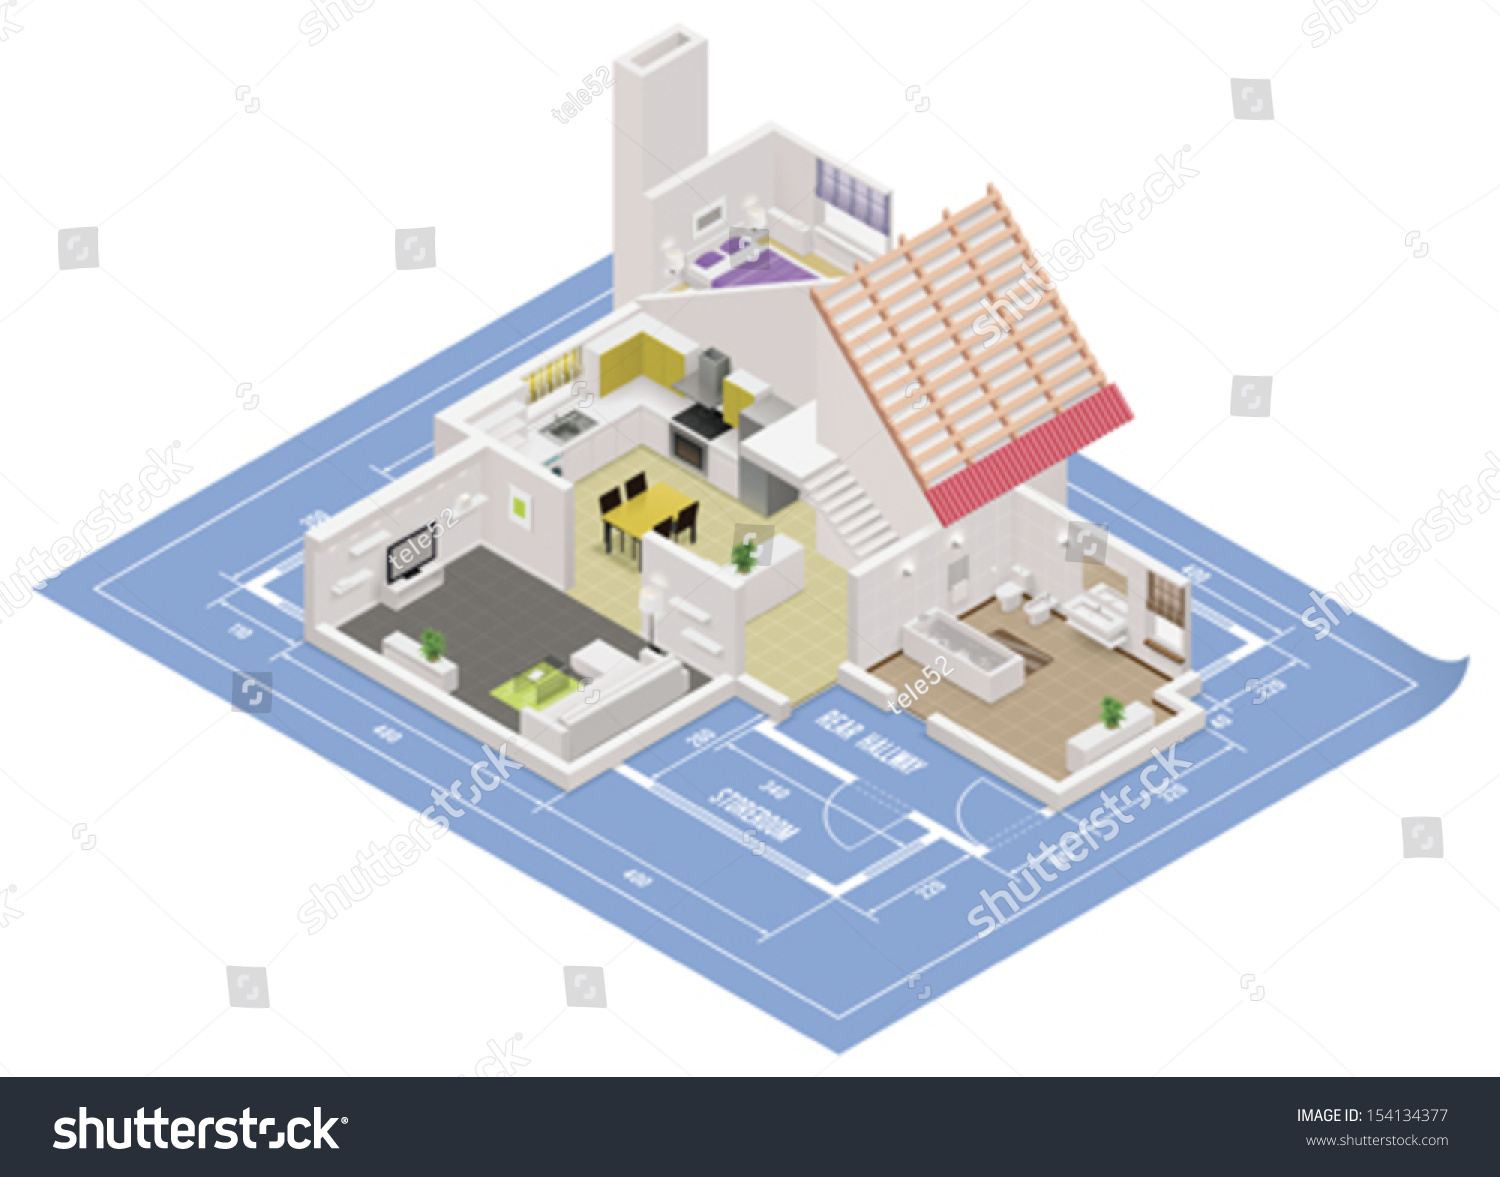 Vector isometric house cutaway icon building stock vector hd vector isometric house cutaway icon building cross section includes rooms and roof placed on ccuart Image collections